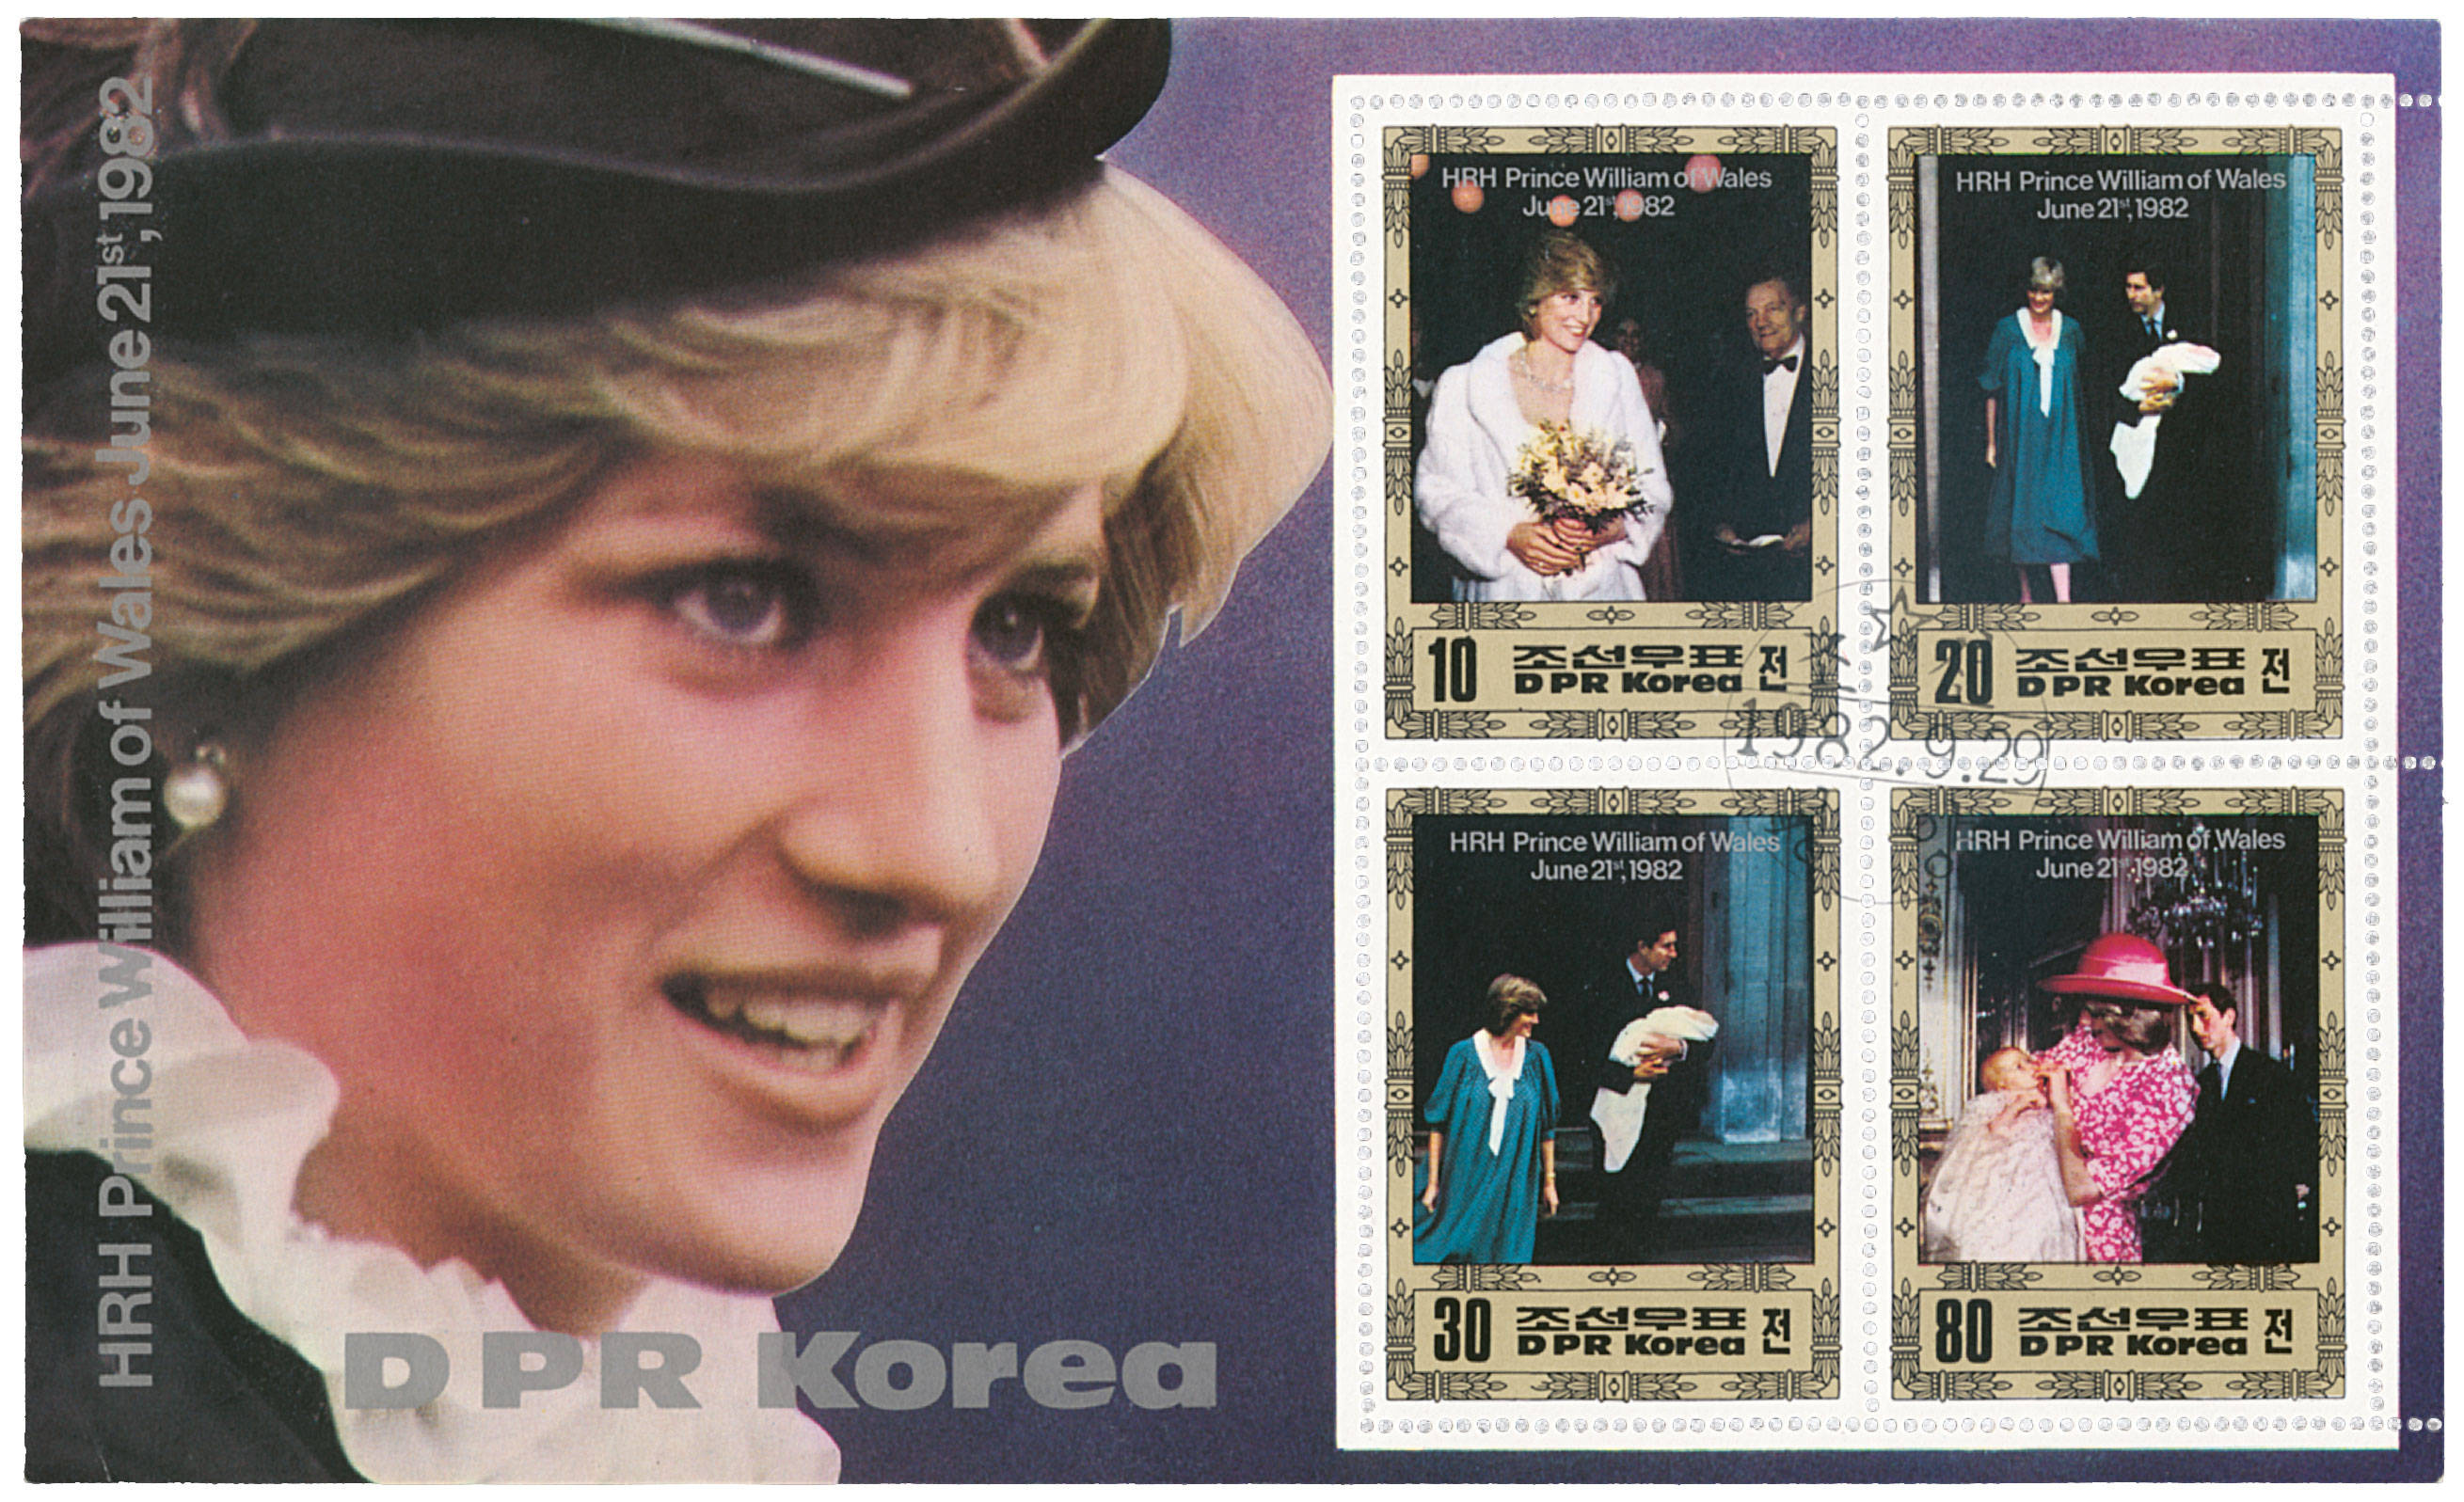 North Korean commemorative stamp sets featuring the British Royal Family. As featured in Made in North Korea